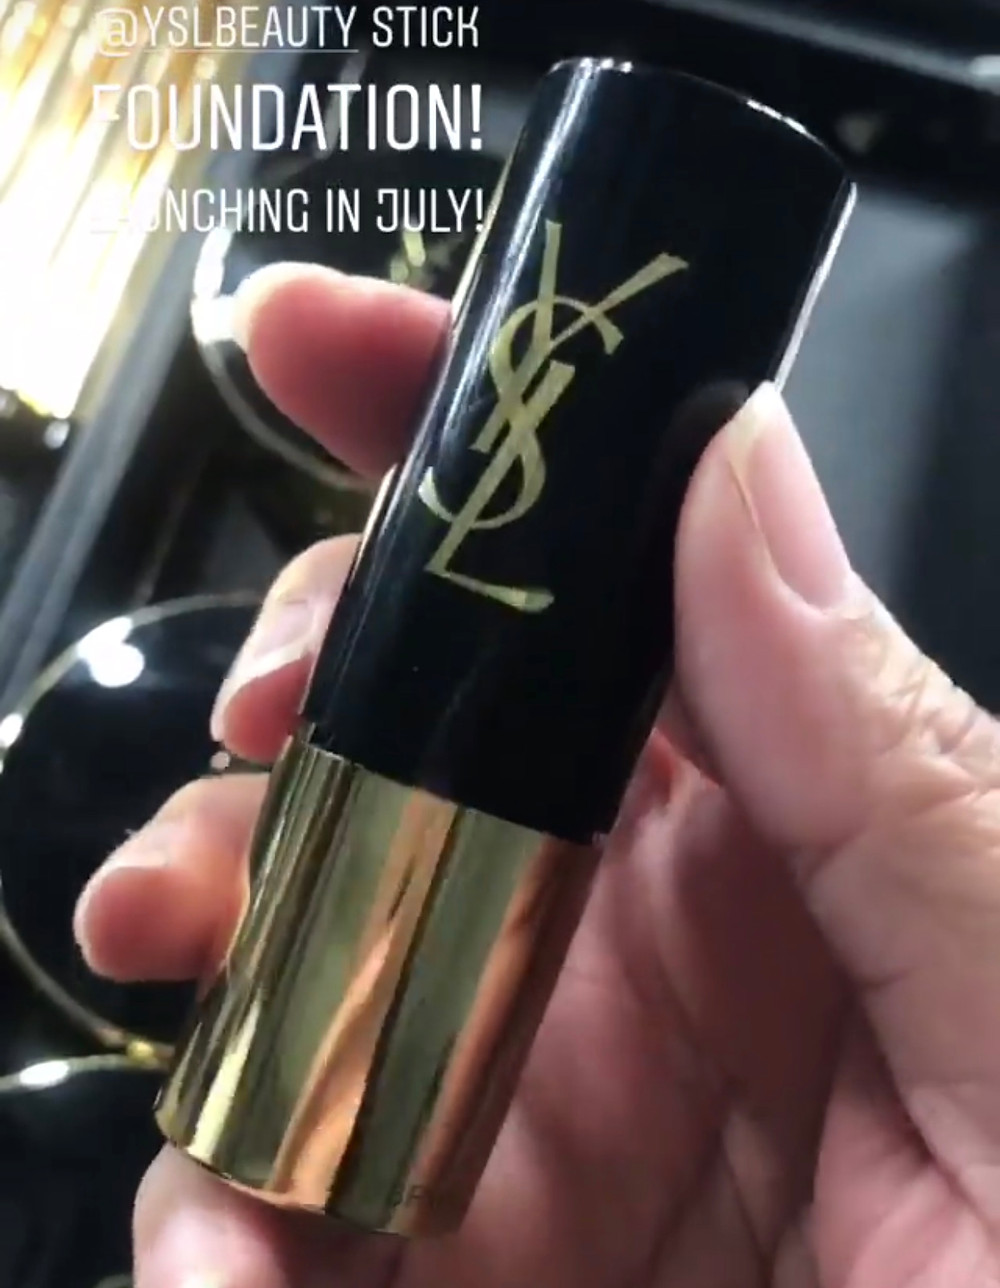 YSL Beauty Stick Foundation | The Scoop | FYI Beauty